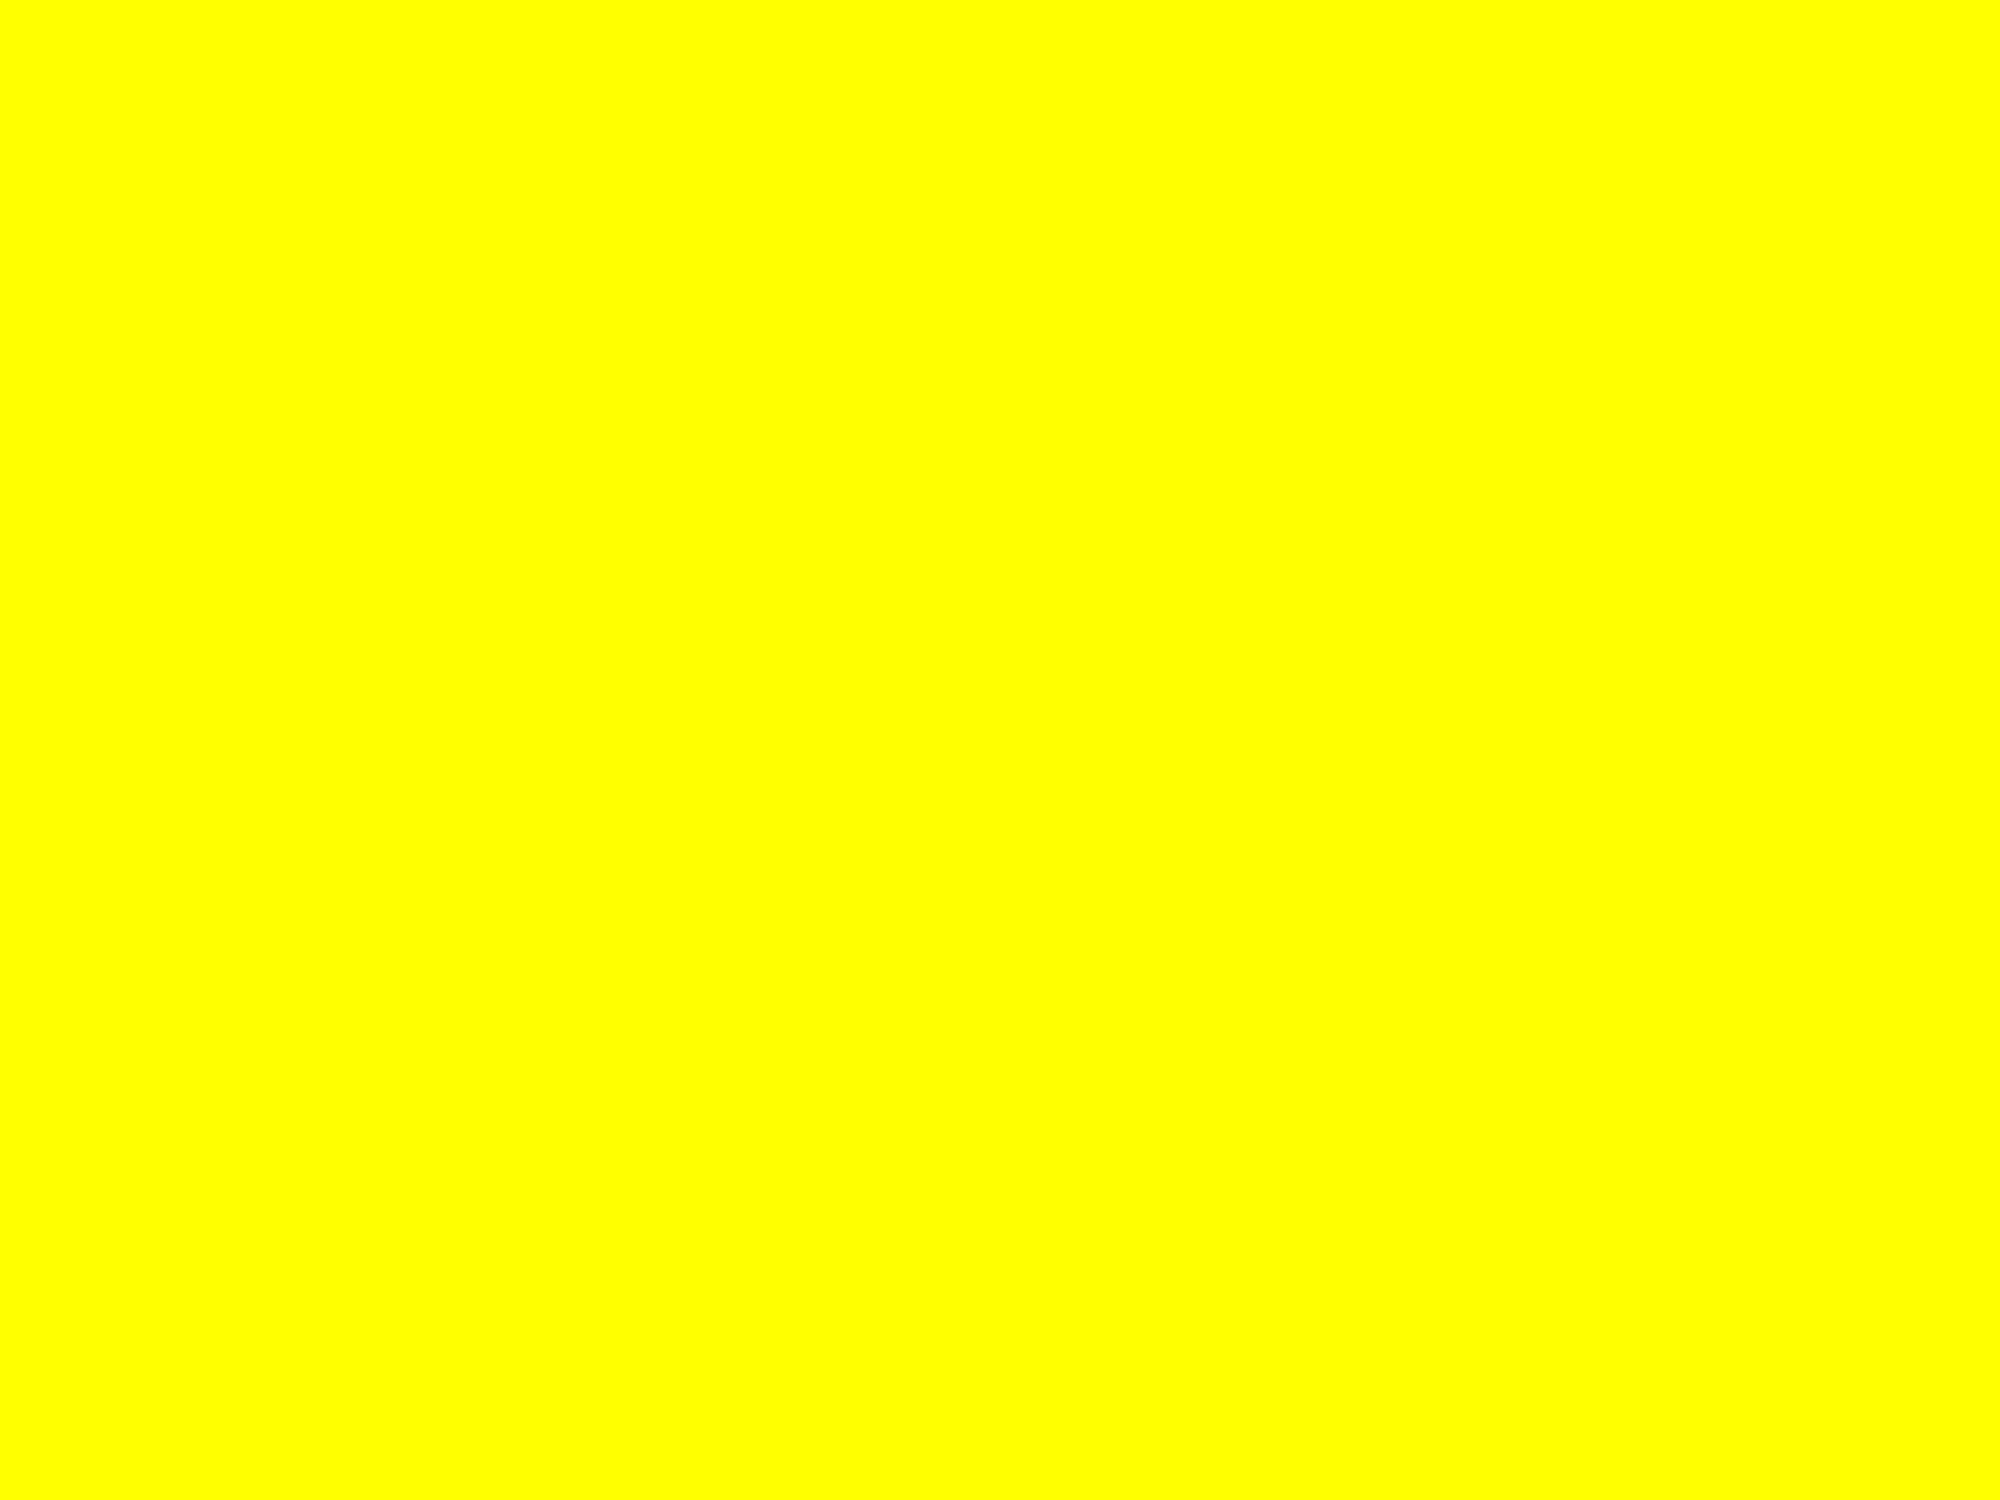 Yellow svg #5, Download drawings